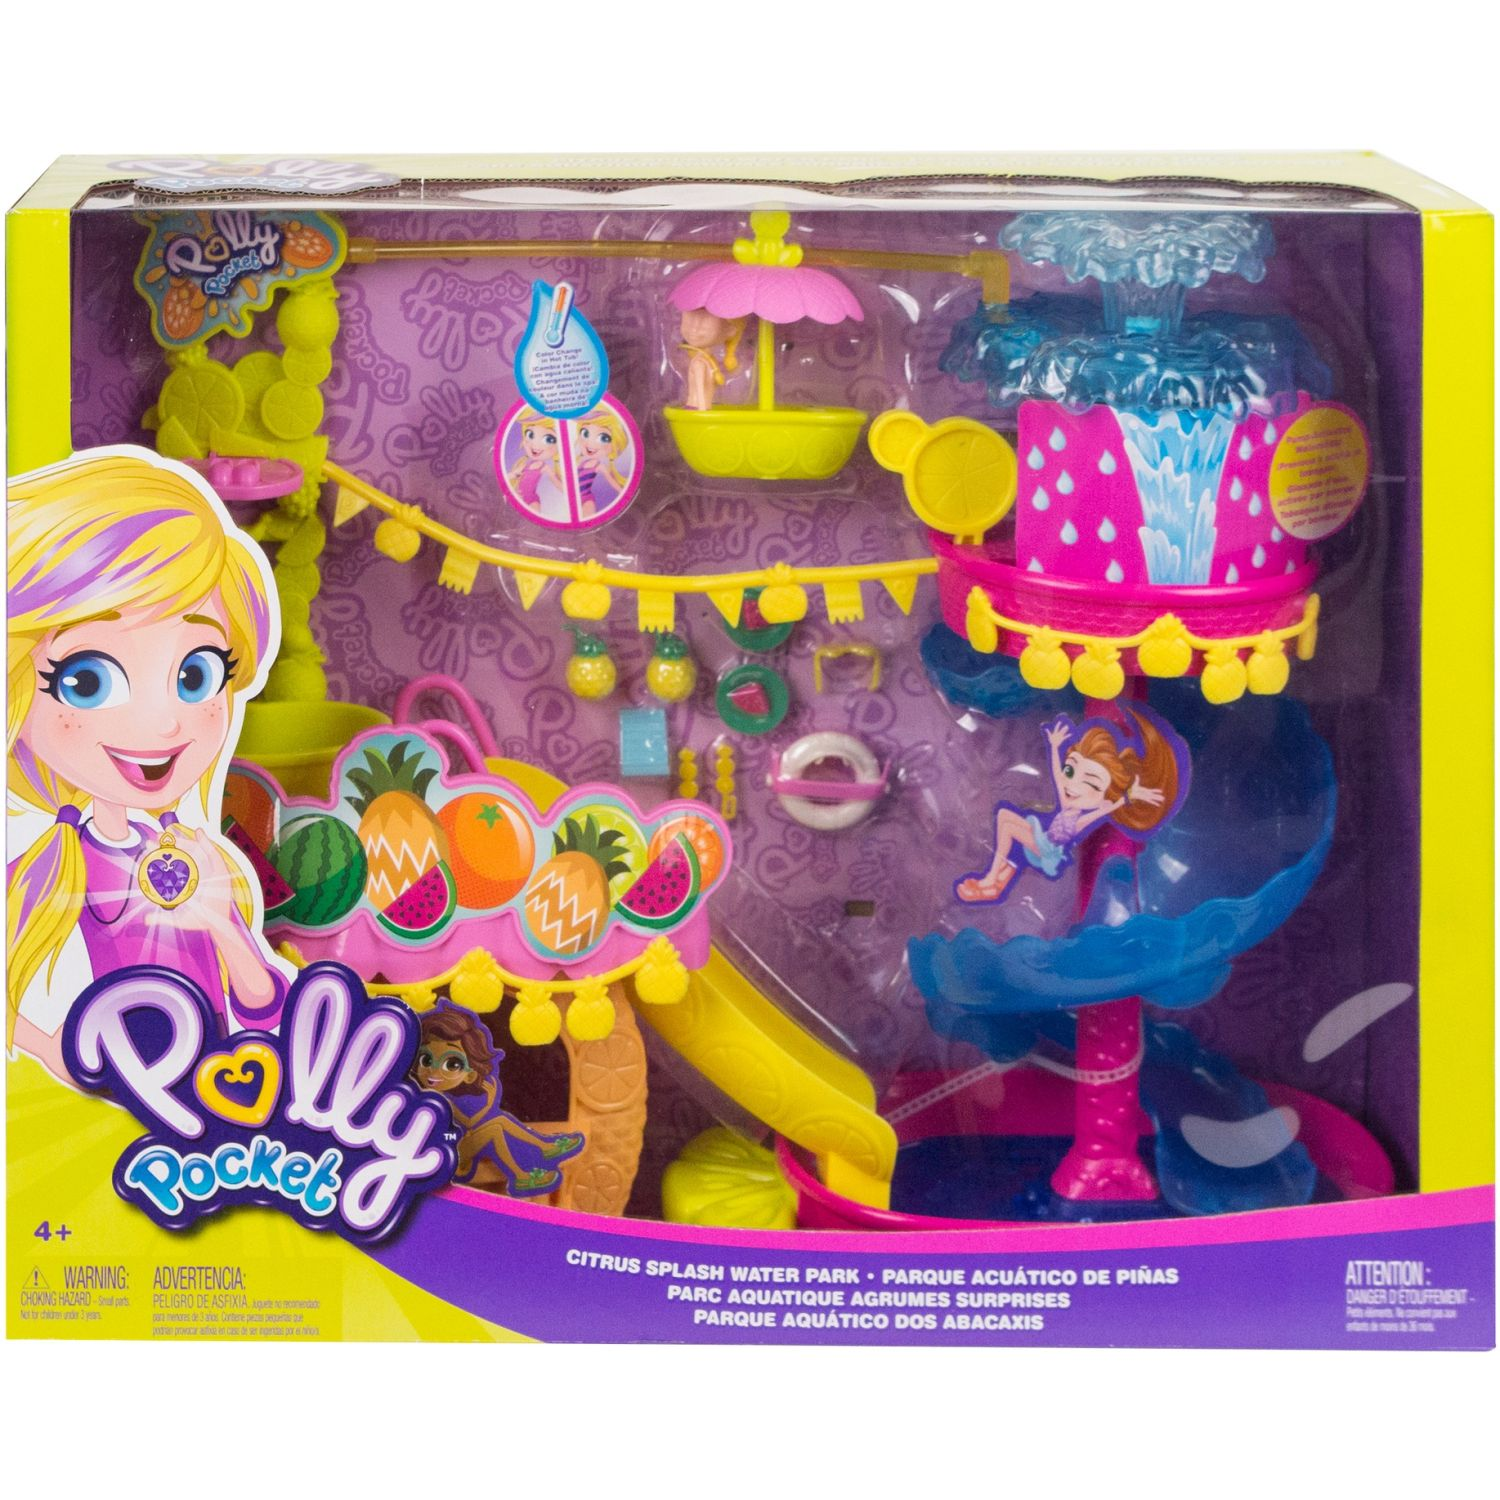 POLLY POCKET Polly Pocket Parque Acuático De Piñas Varios Sets de juego